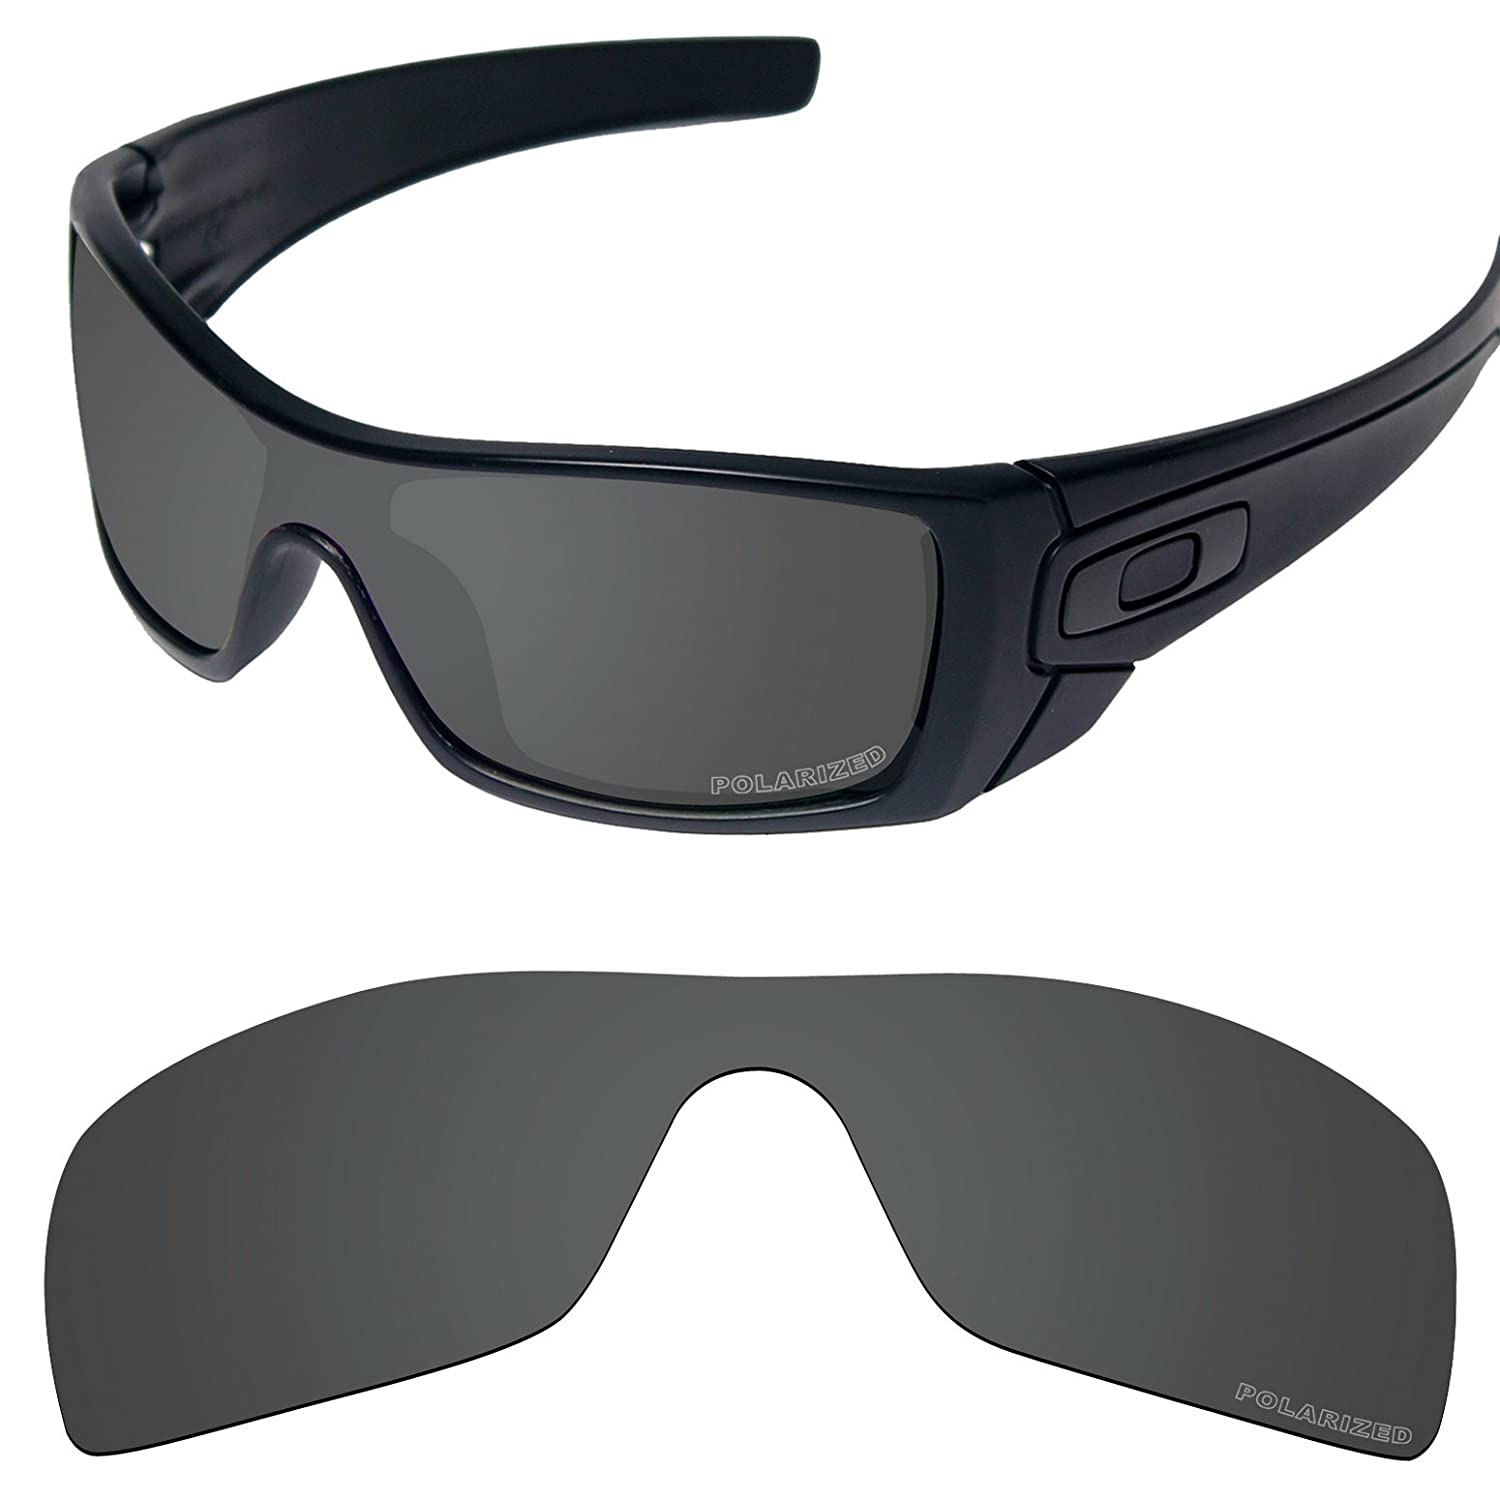 b1eb232791523 Amazon.com  Tintart Performance Lenses Compatible with Oakley Batwolf  Polarized Etched-Carbon Black  Clothing